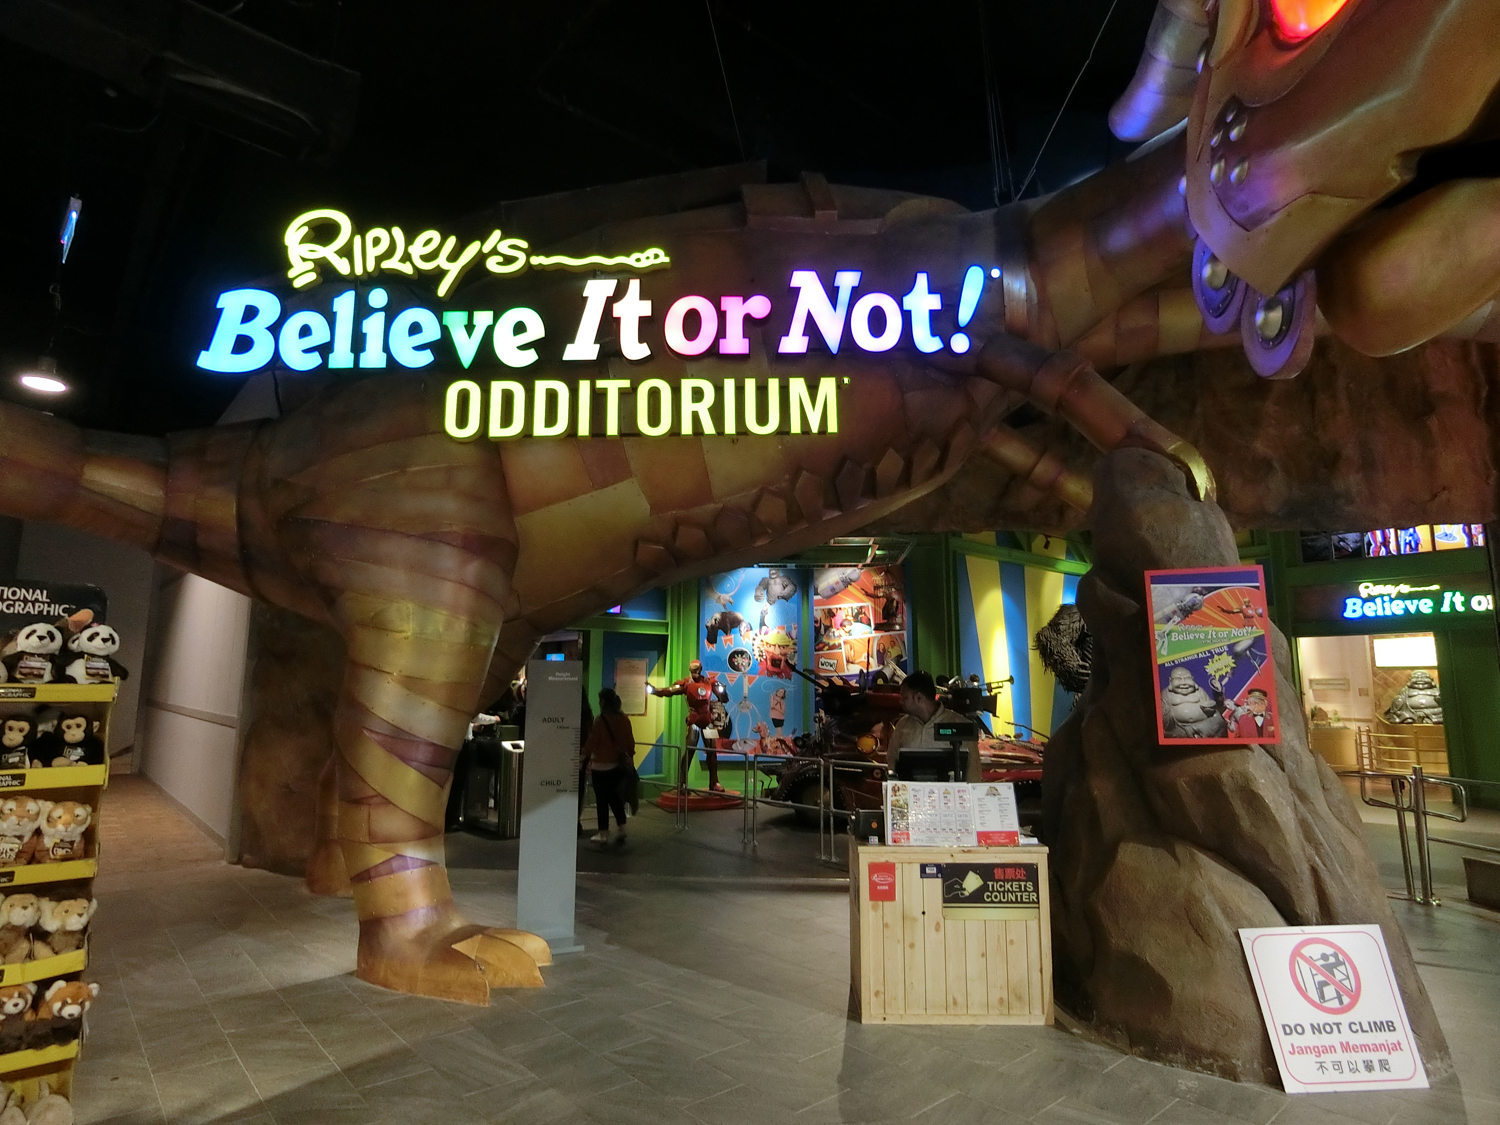 Genting_Highlands_Skytropolis_Ripleys_odditorium_1